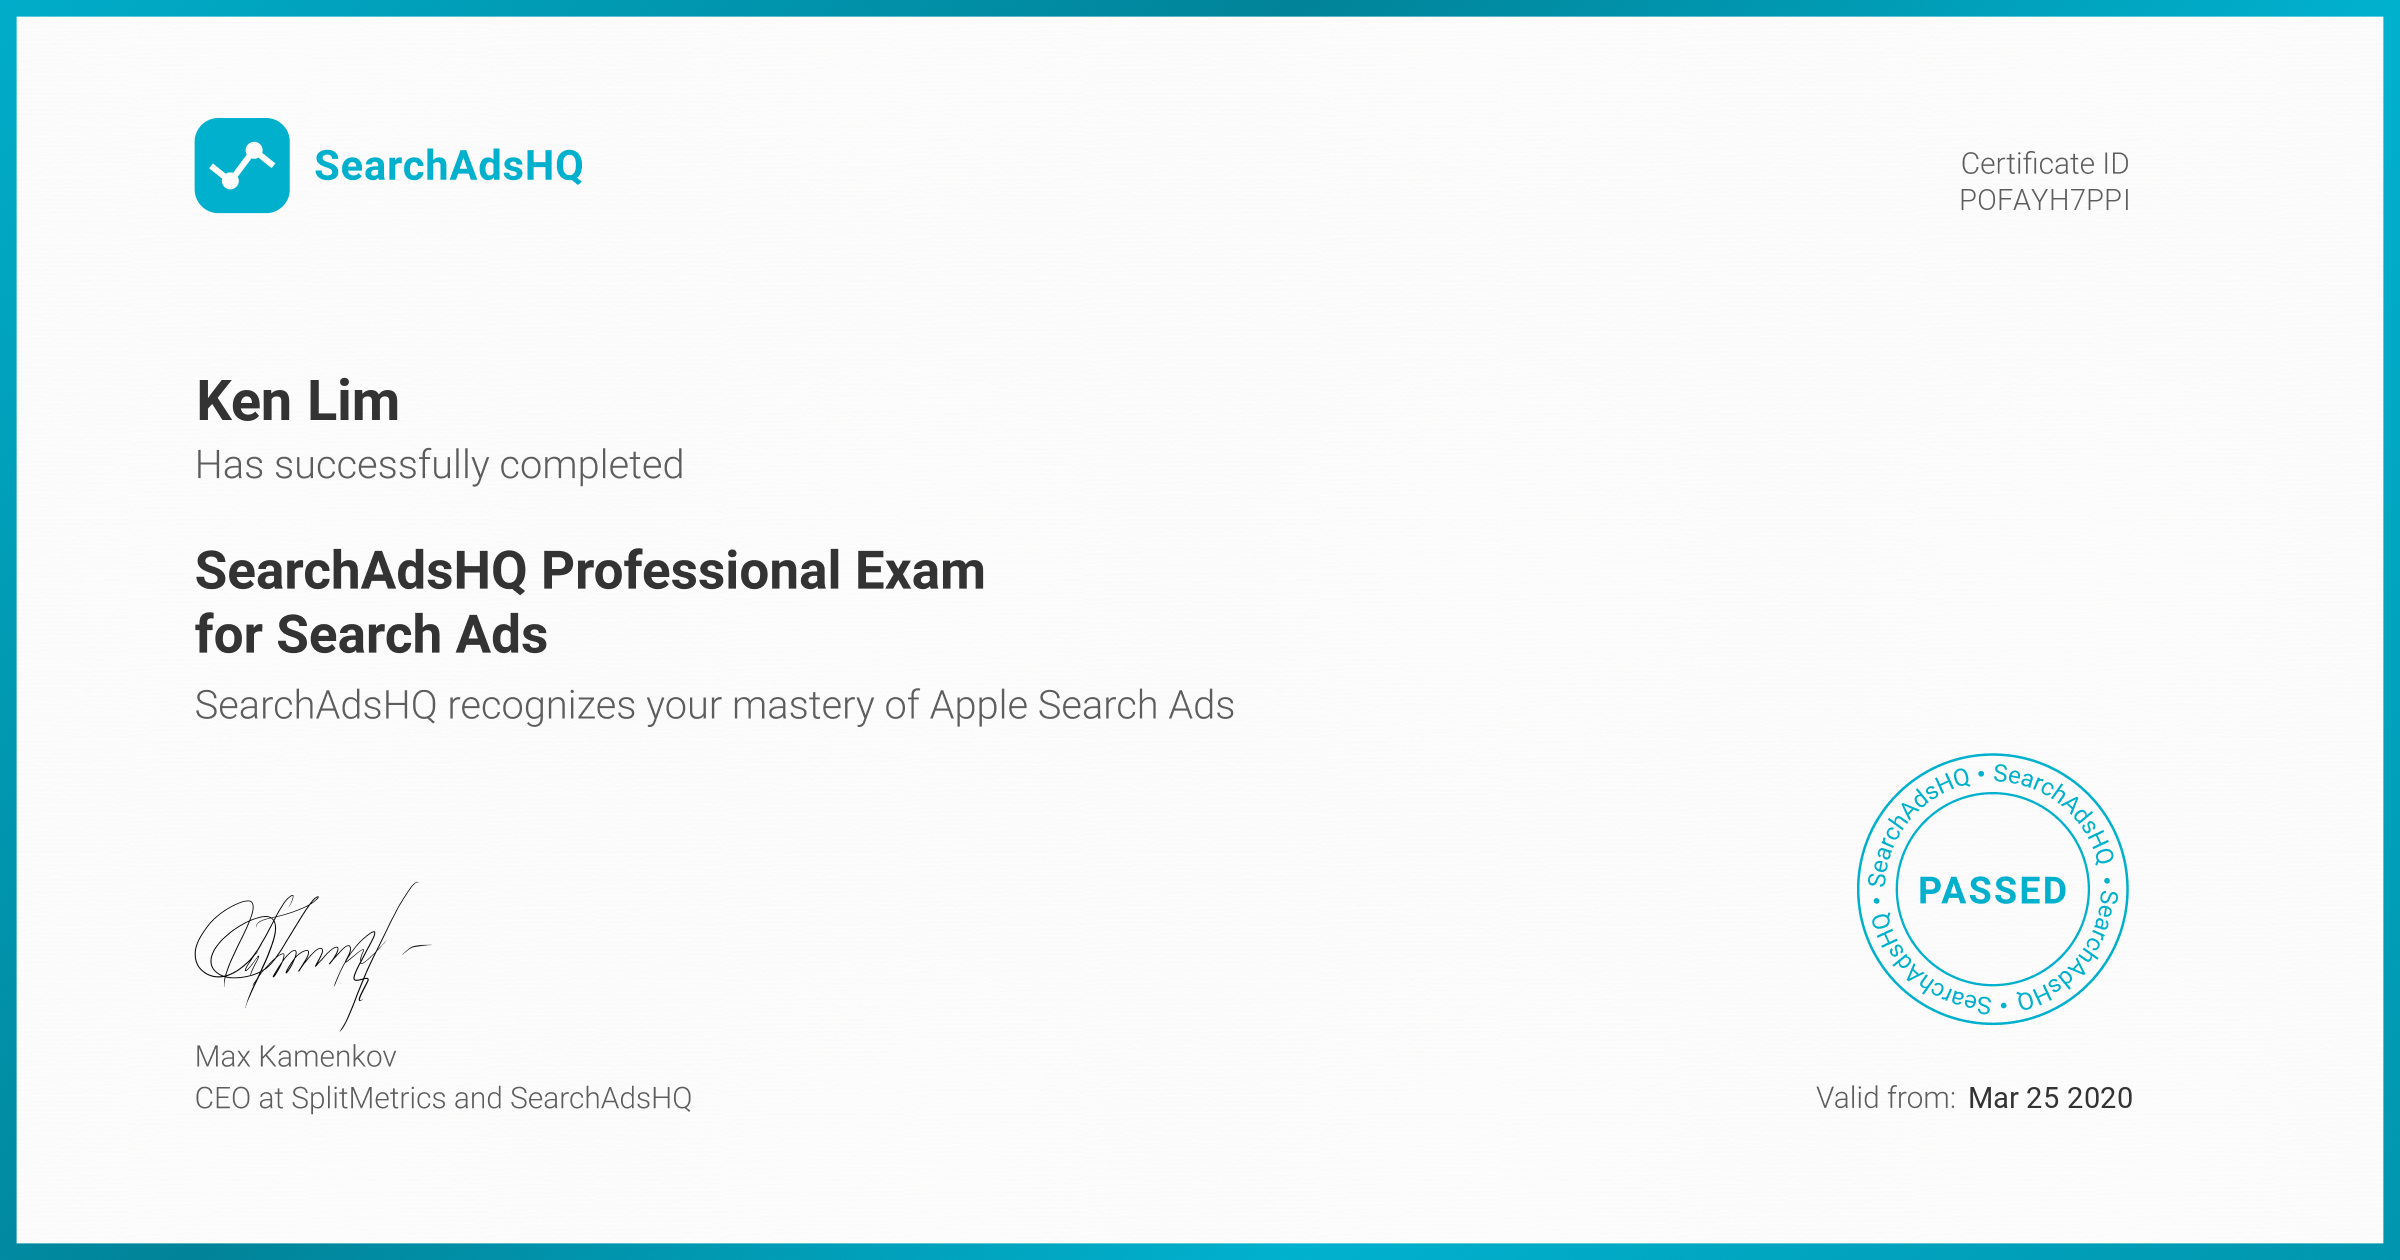 Certificate for Ken Lim | SearchAdsHQ Professional Exam for Search Ads